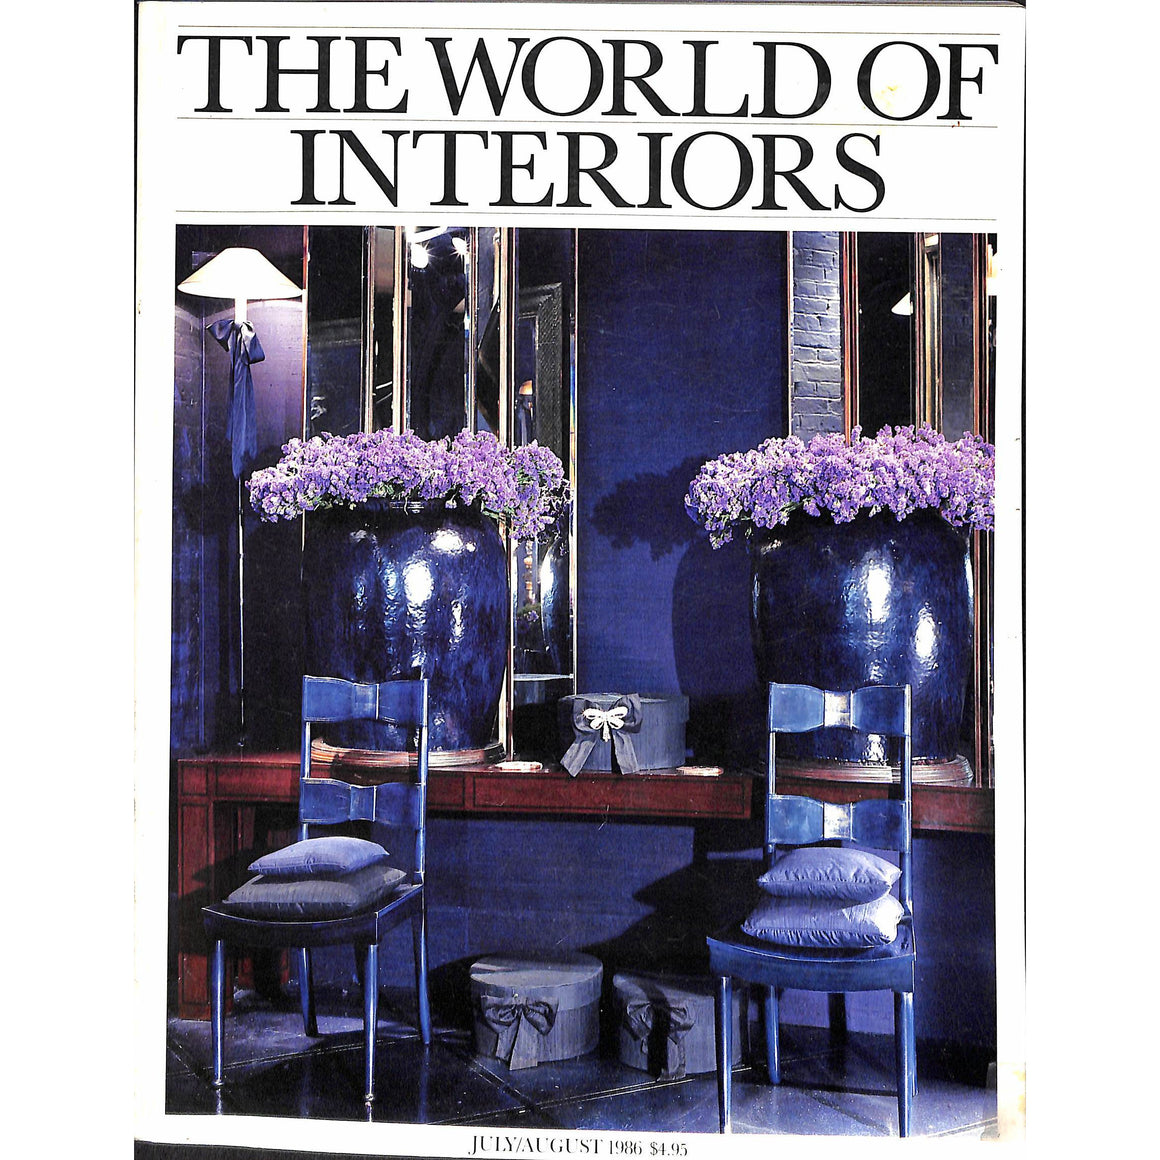 'The World of Interiors July/ August 1986'